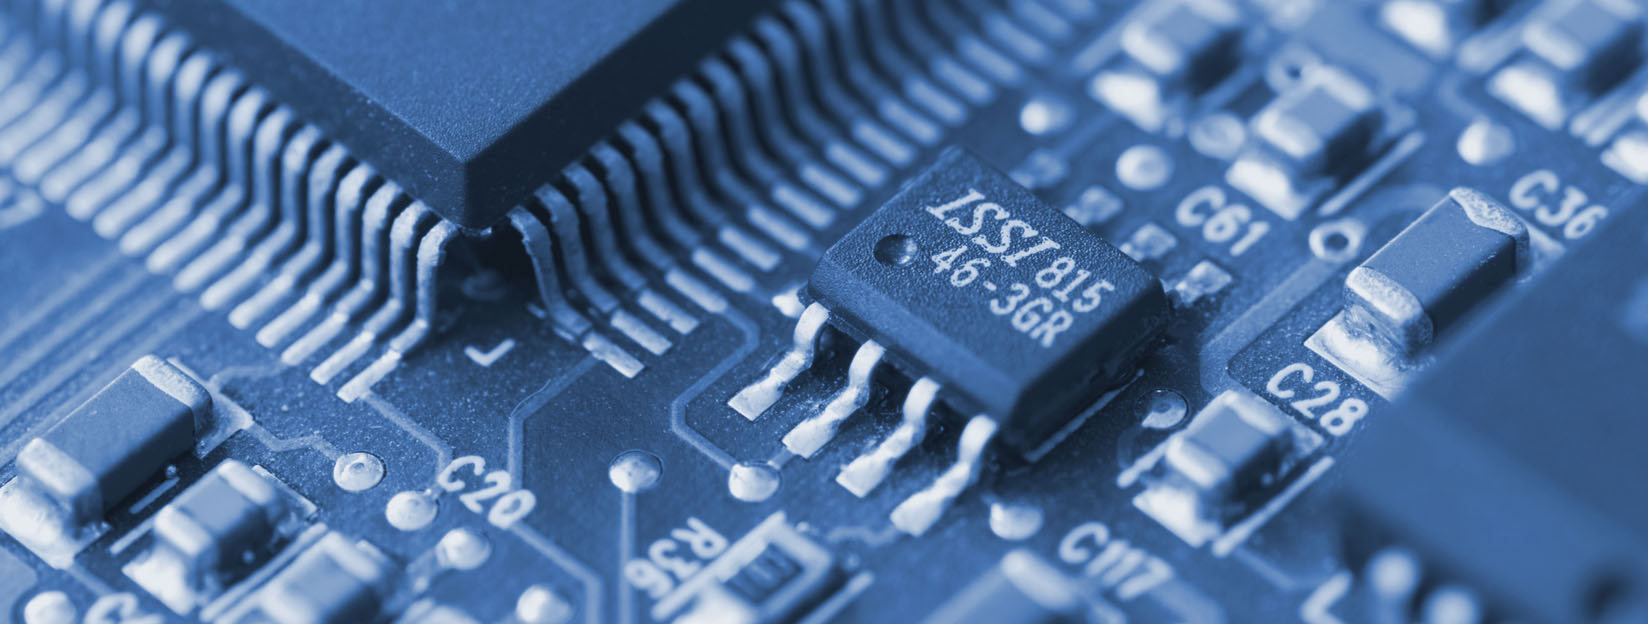 Active Electronic Components Market to Exceed $521 Bn by 2027